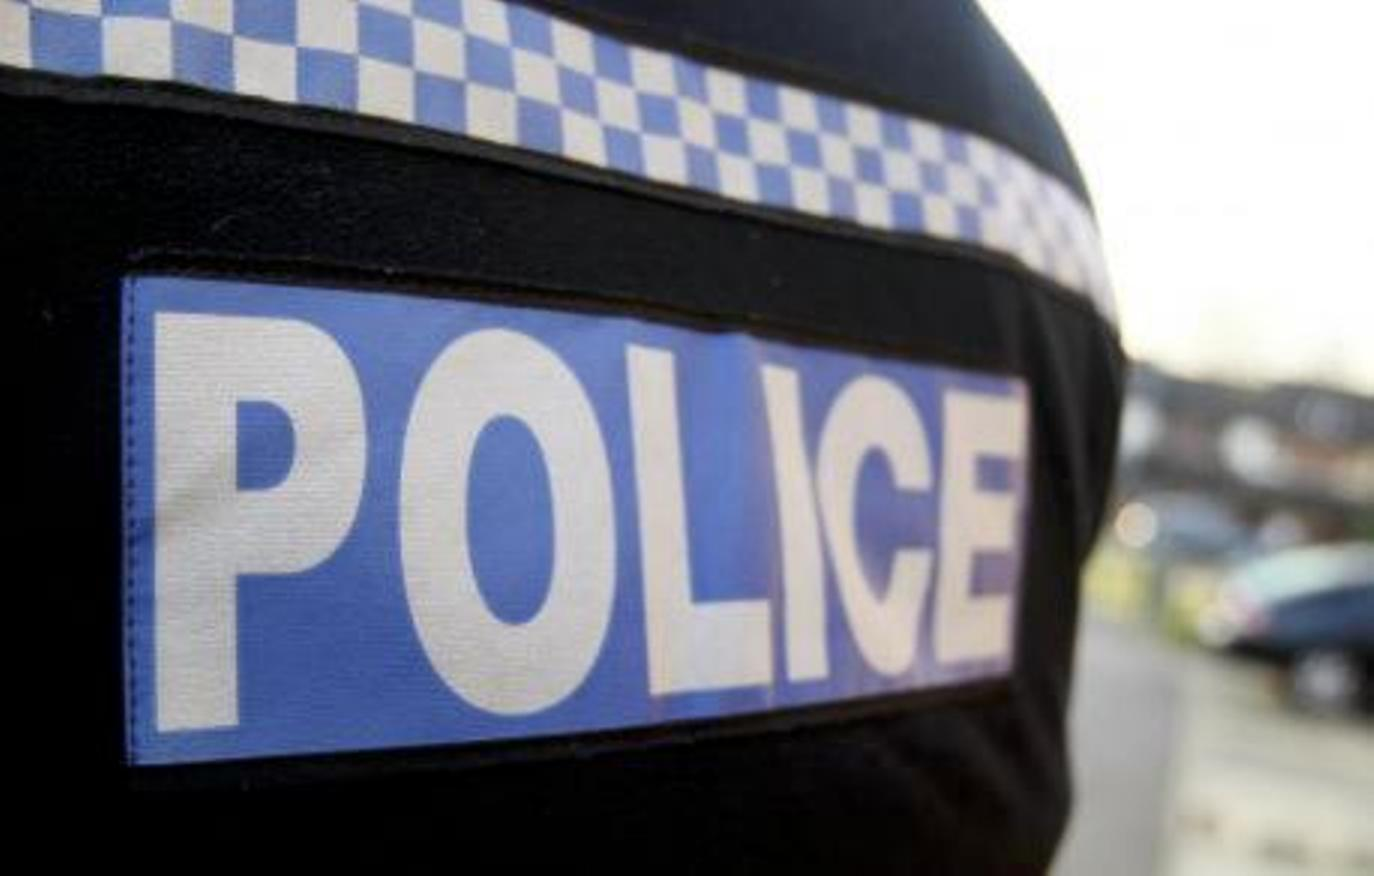 West Yorkshire Police 'spy on us 35 times a day'